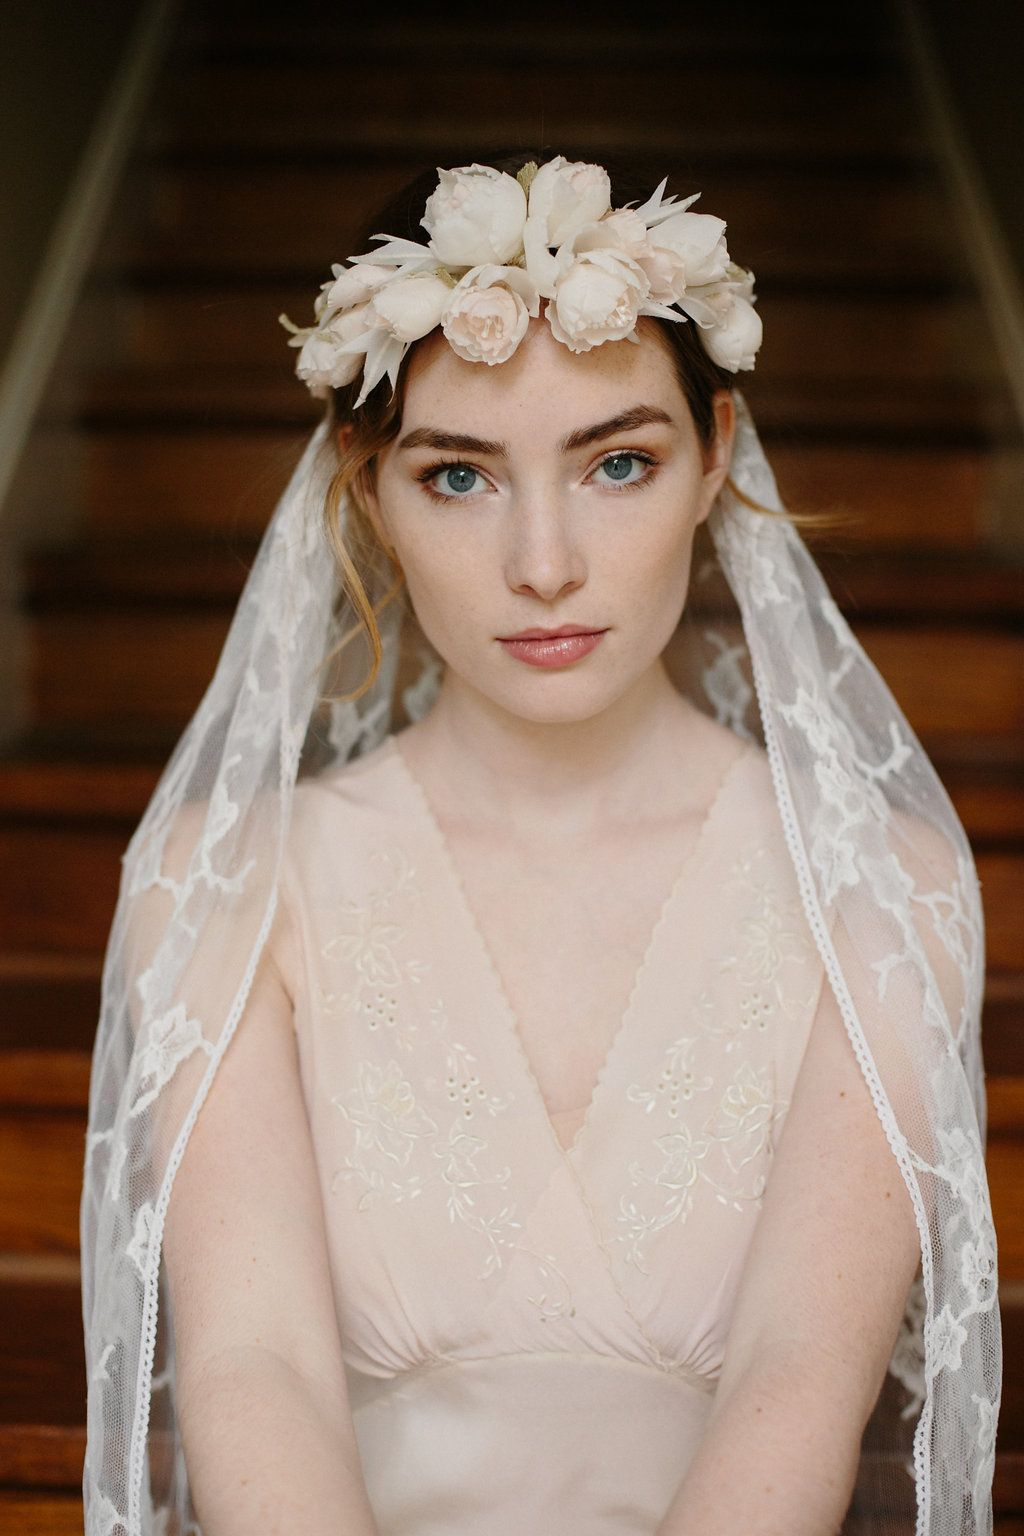 Heart soul flower crown and lace veil flower crowns crown and bridal silk flower crown boho chic chantilly lace wedding veil blush roses izmirmasajfo